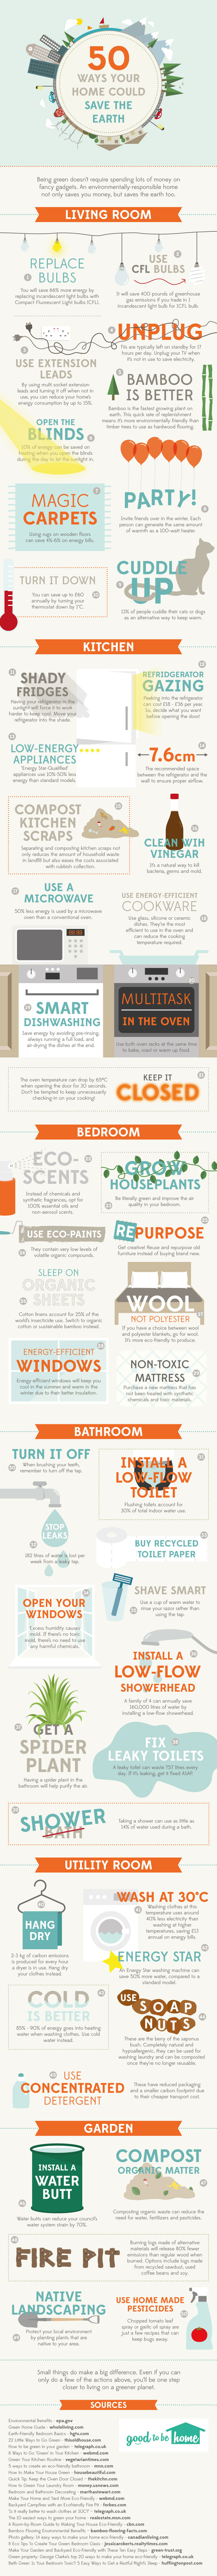 50 ways your Home can save the Earth infographic